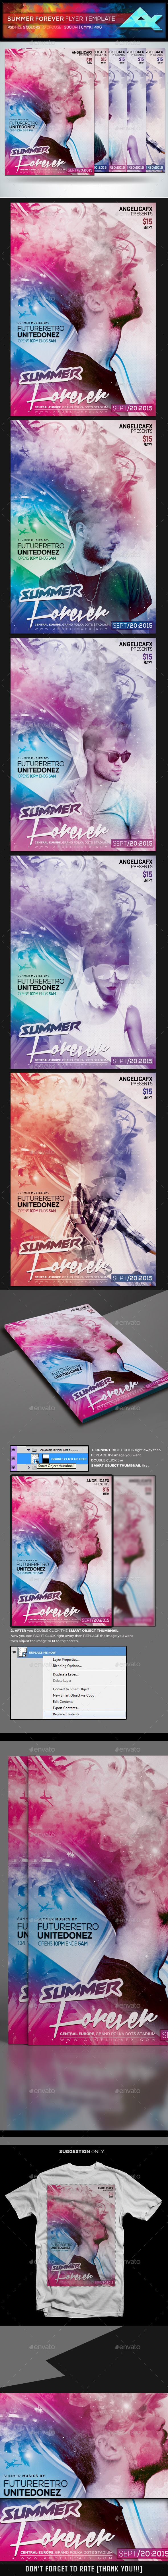 Summer Forever Flyer Template